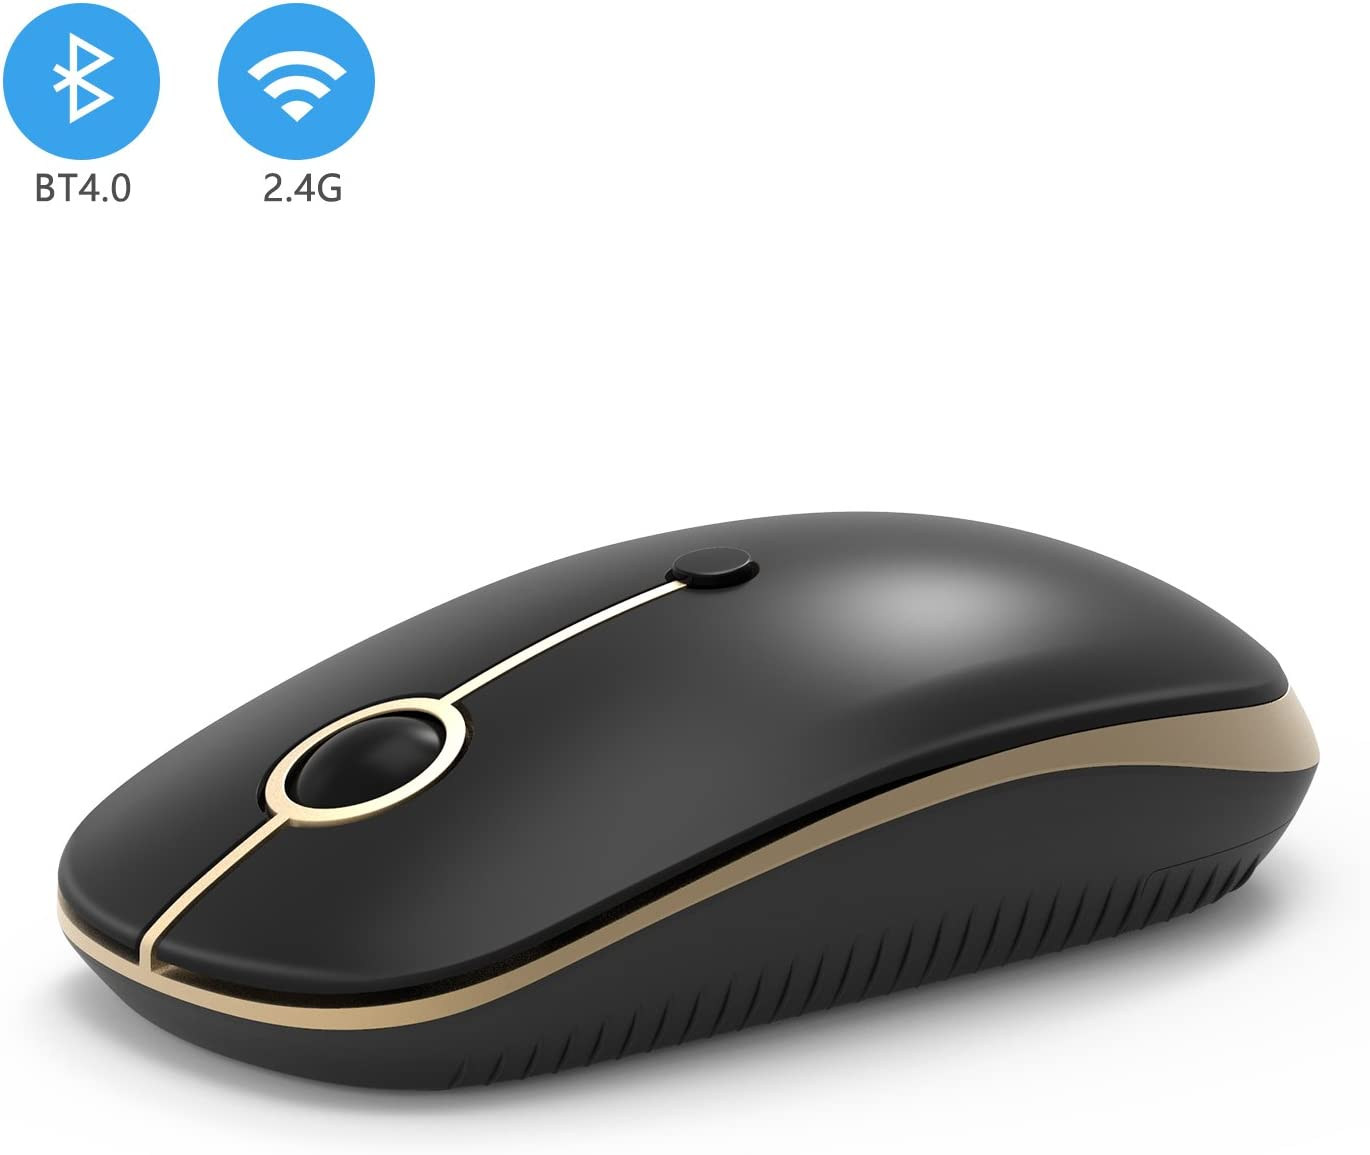 2.4GHz Wireless Bluetooth Mouse, Jelly Comb Dual Mode Slim Wireless Mouse with 2400 DPI Compatible for PC, Laptop, Mac, Android, Windows (Black and Gold)